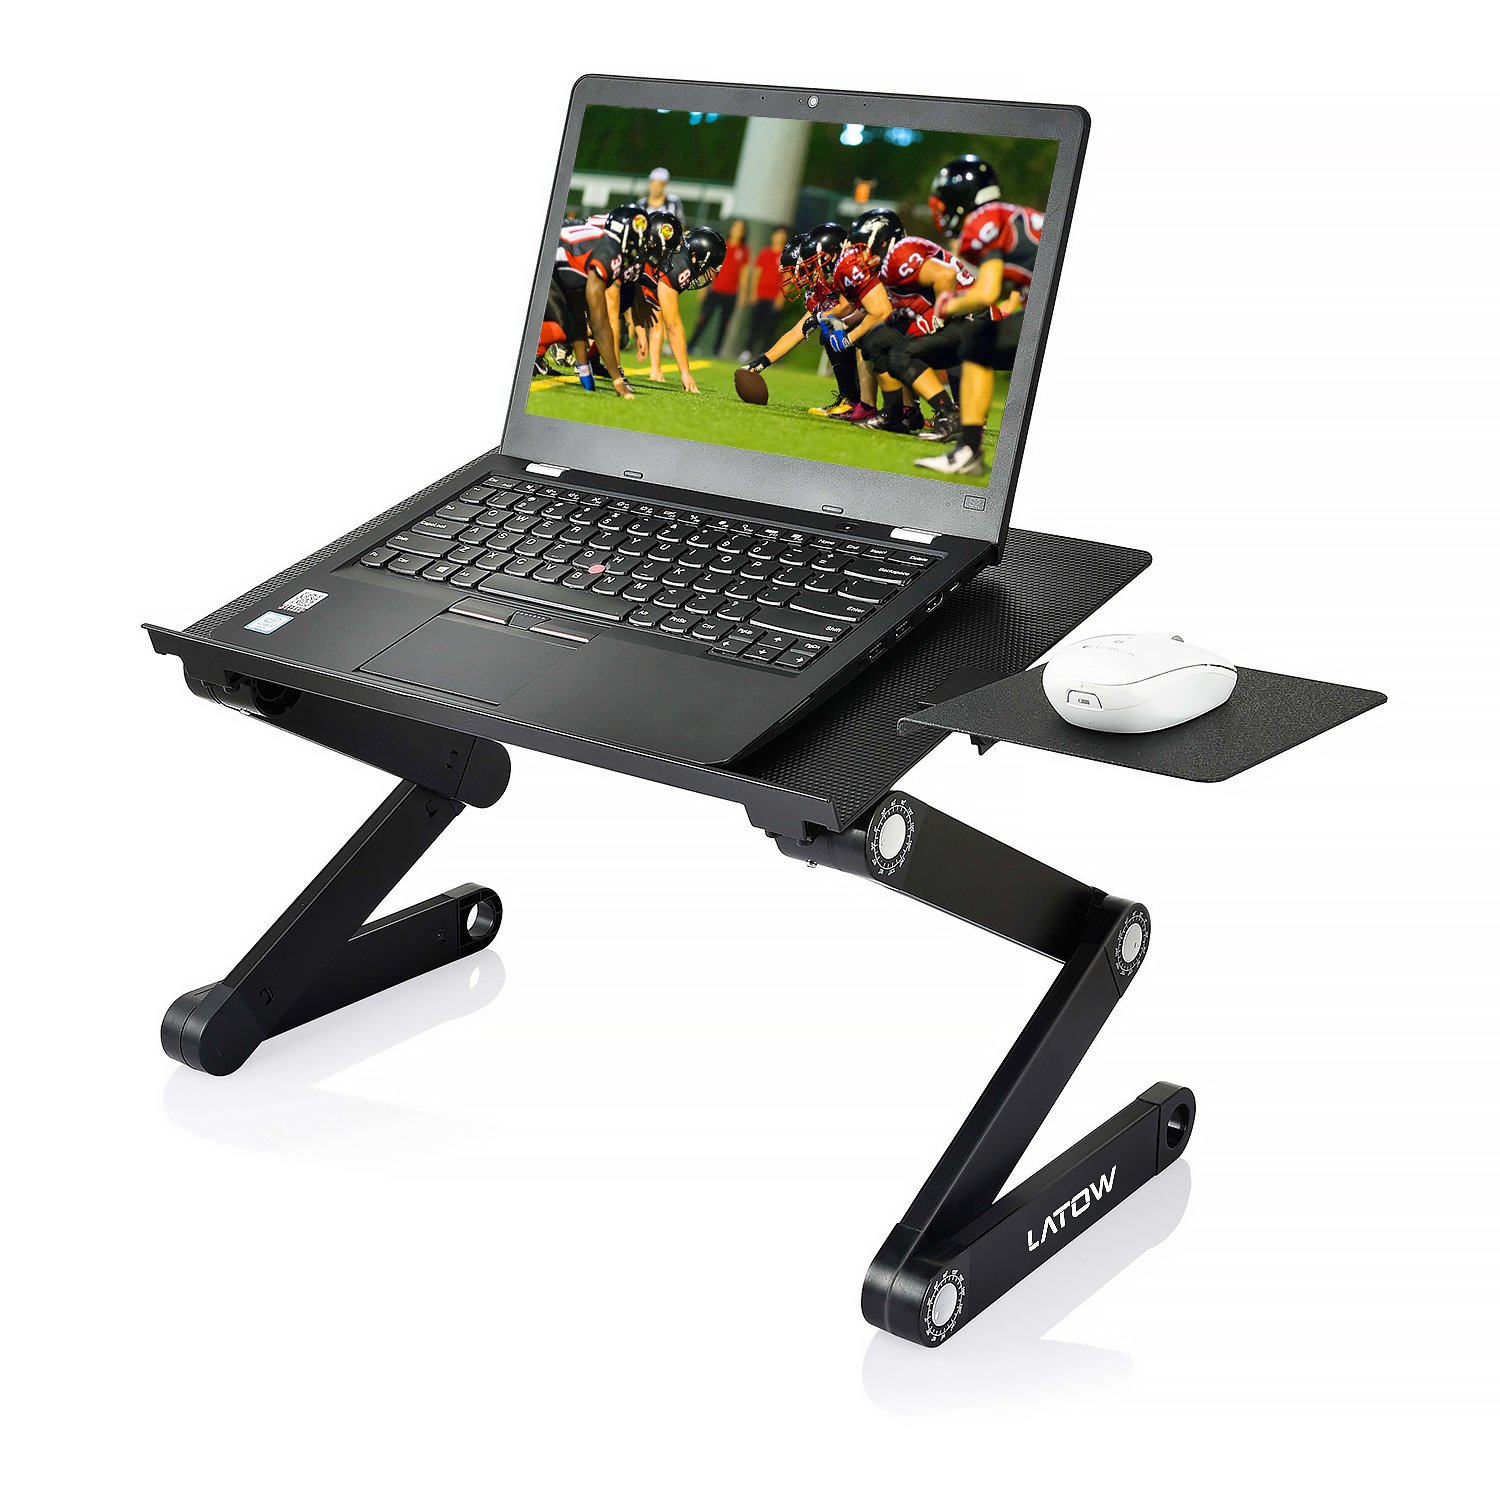 Adjustable Laptop Stand, LATOW Portable Desk with 2 Cooling Fans, 360 Degree Folding Notebook Lap Table, Mouse Board Side Mount, Lightweight Aluminum Tray,for Bed Sofa Couch Office